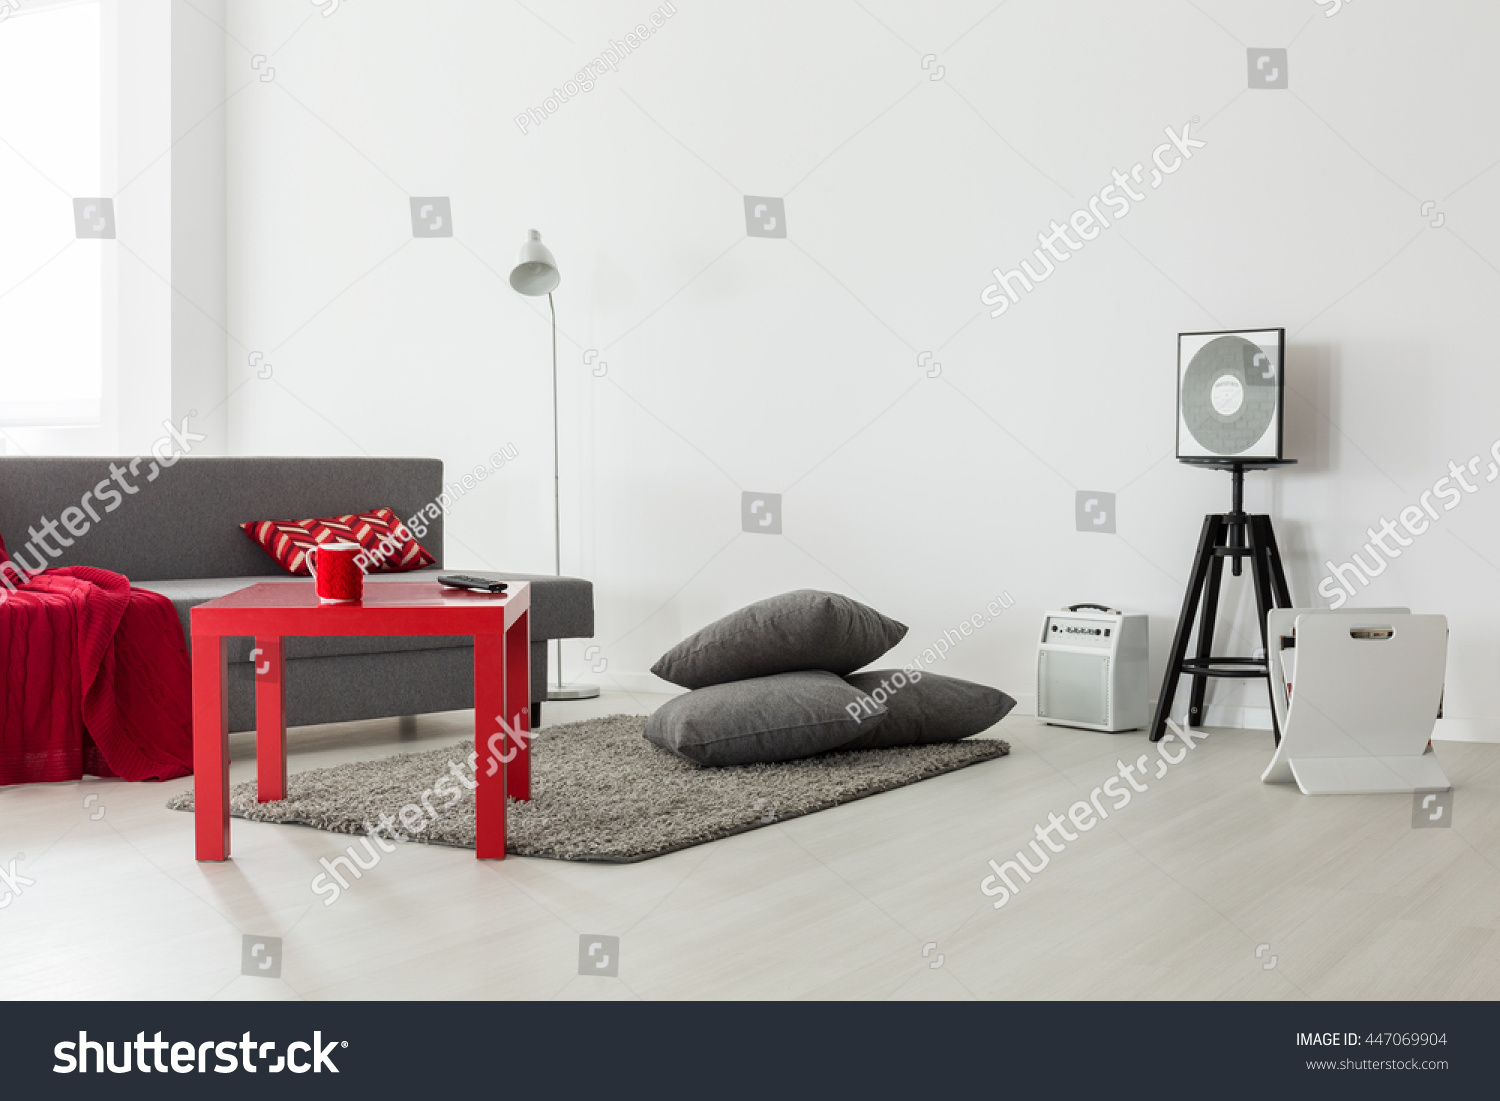 Swell Minimalist Interior Bright Living Room Grey Stock Photo Download Free Architecture Designs Scobabritishbridgeorg